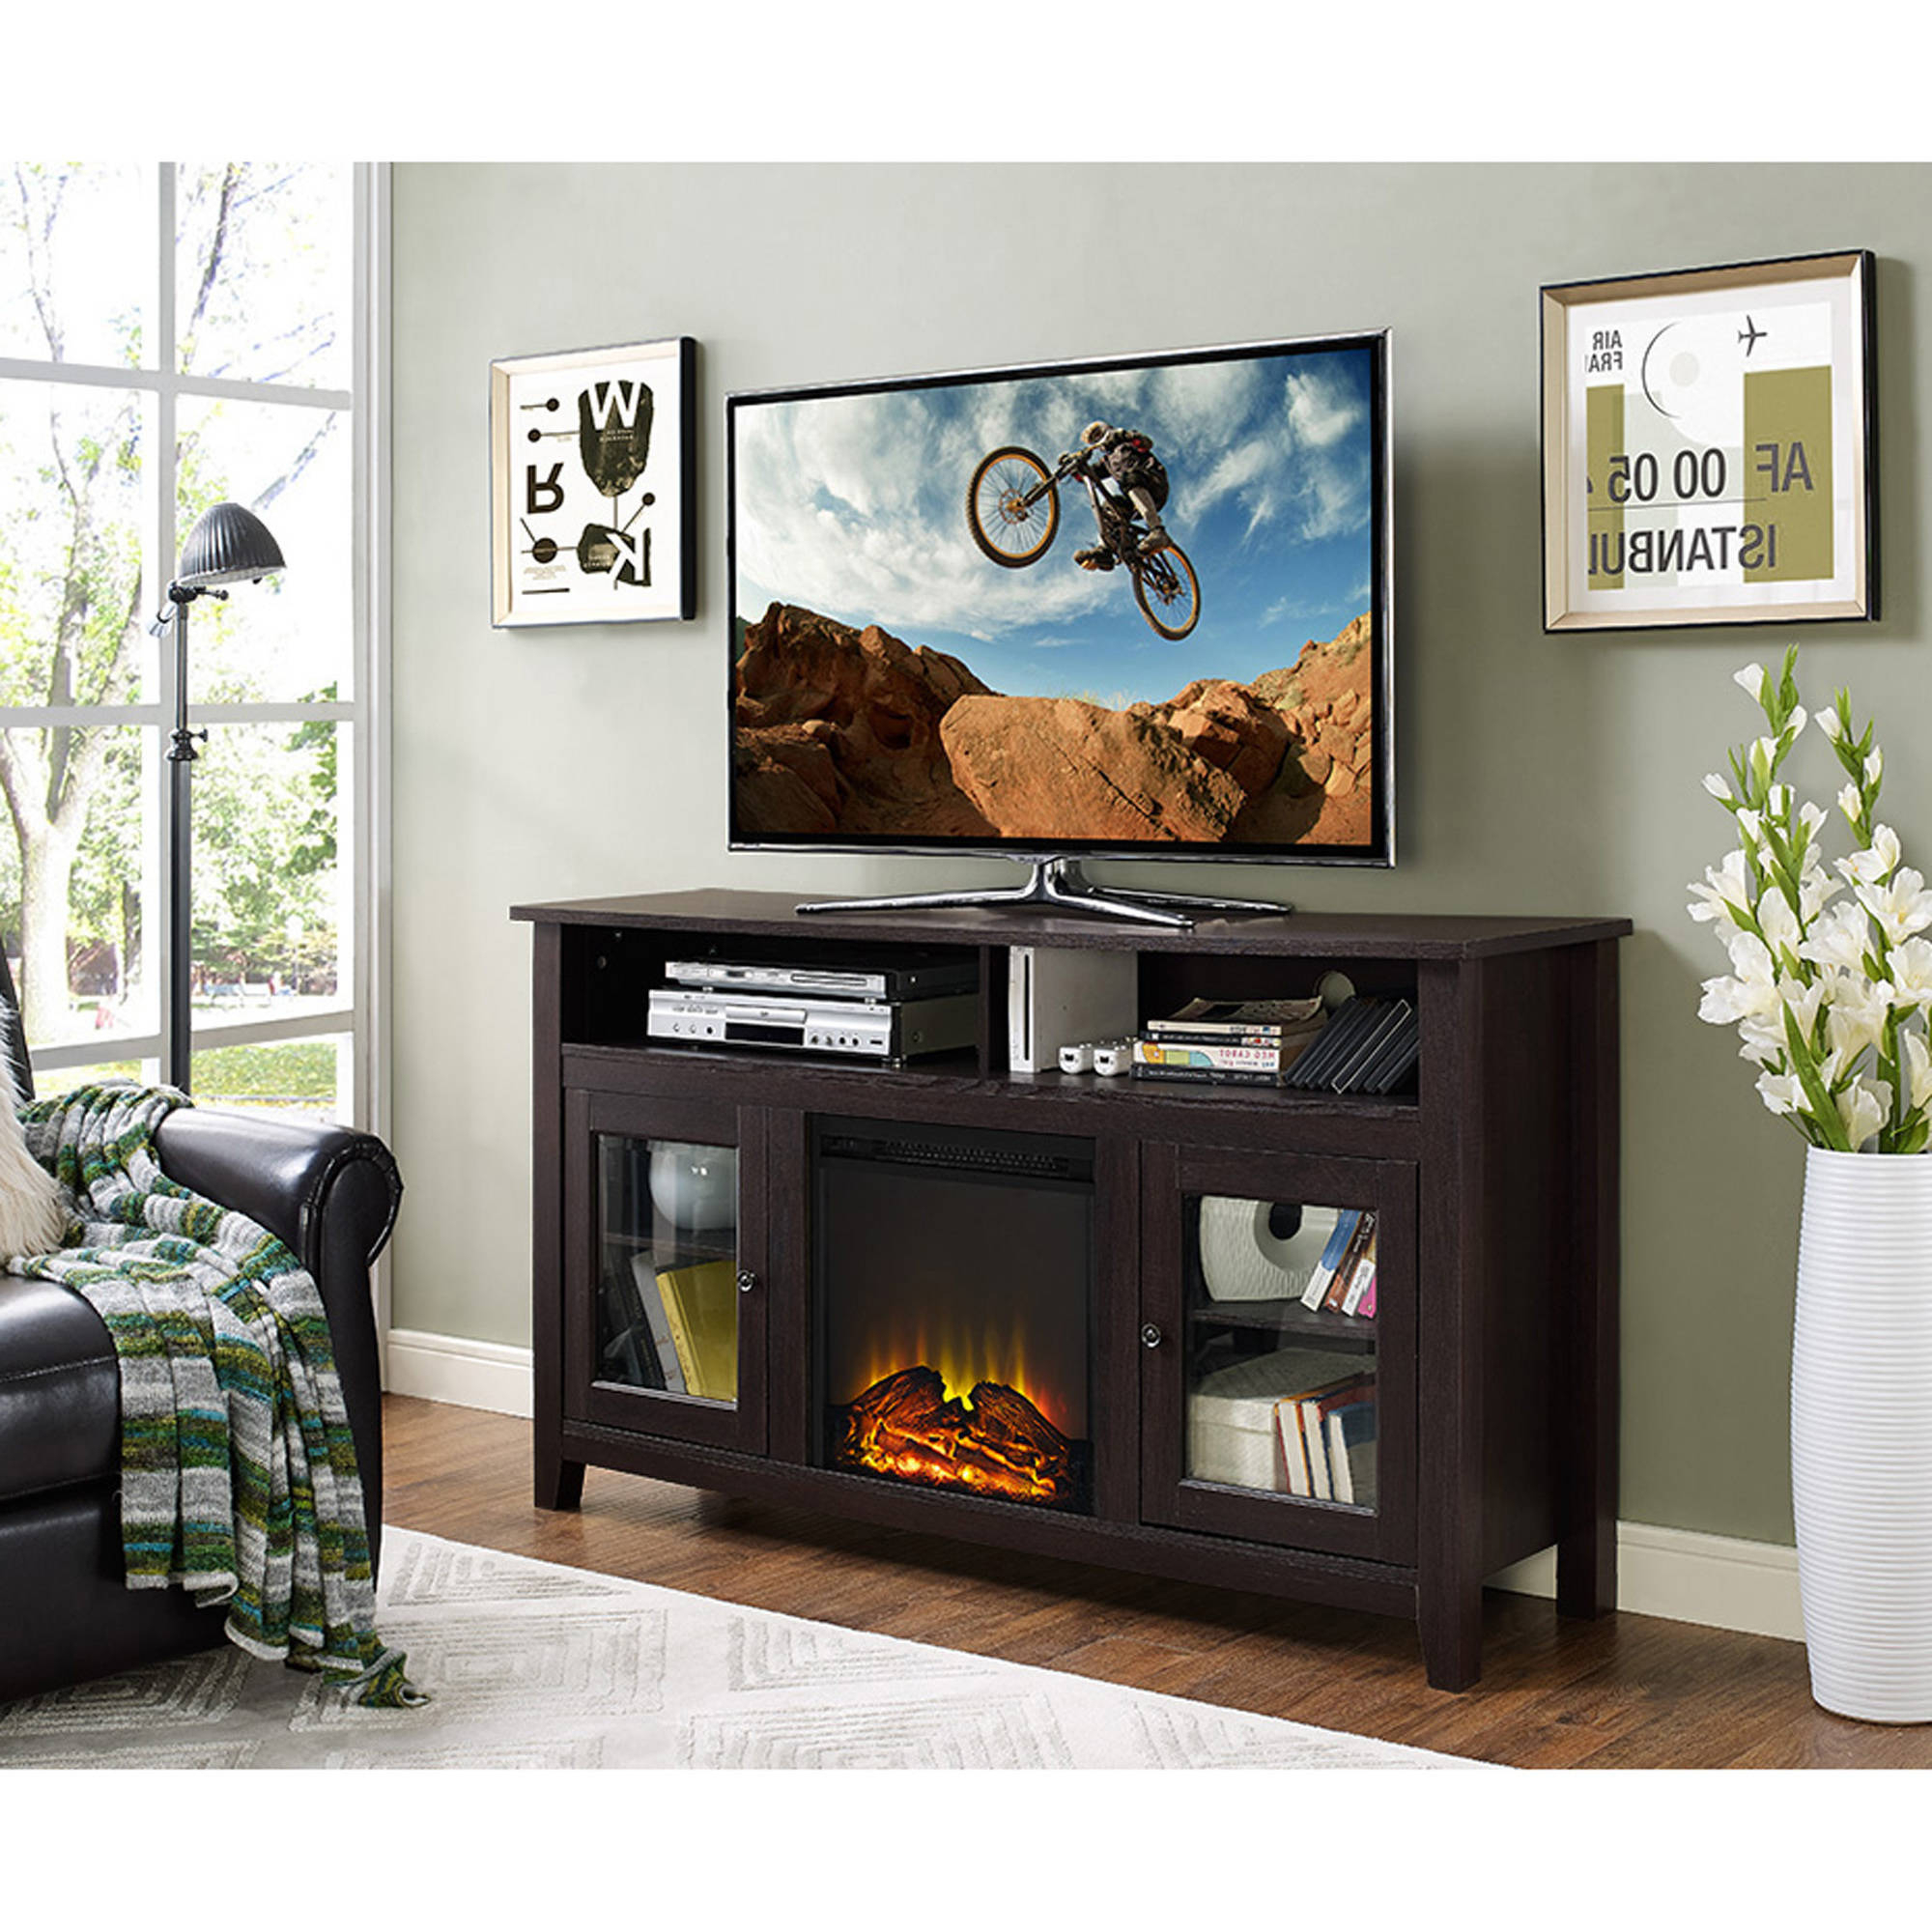 """58"""" Wood Highboy Fireplace Tv Stand For Tvs Up To 60 Inside Corner Tv Stands For Tvs Up To 60"""" (View 14 of 20)"""